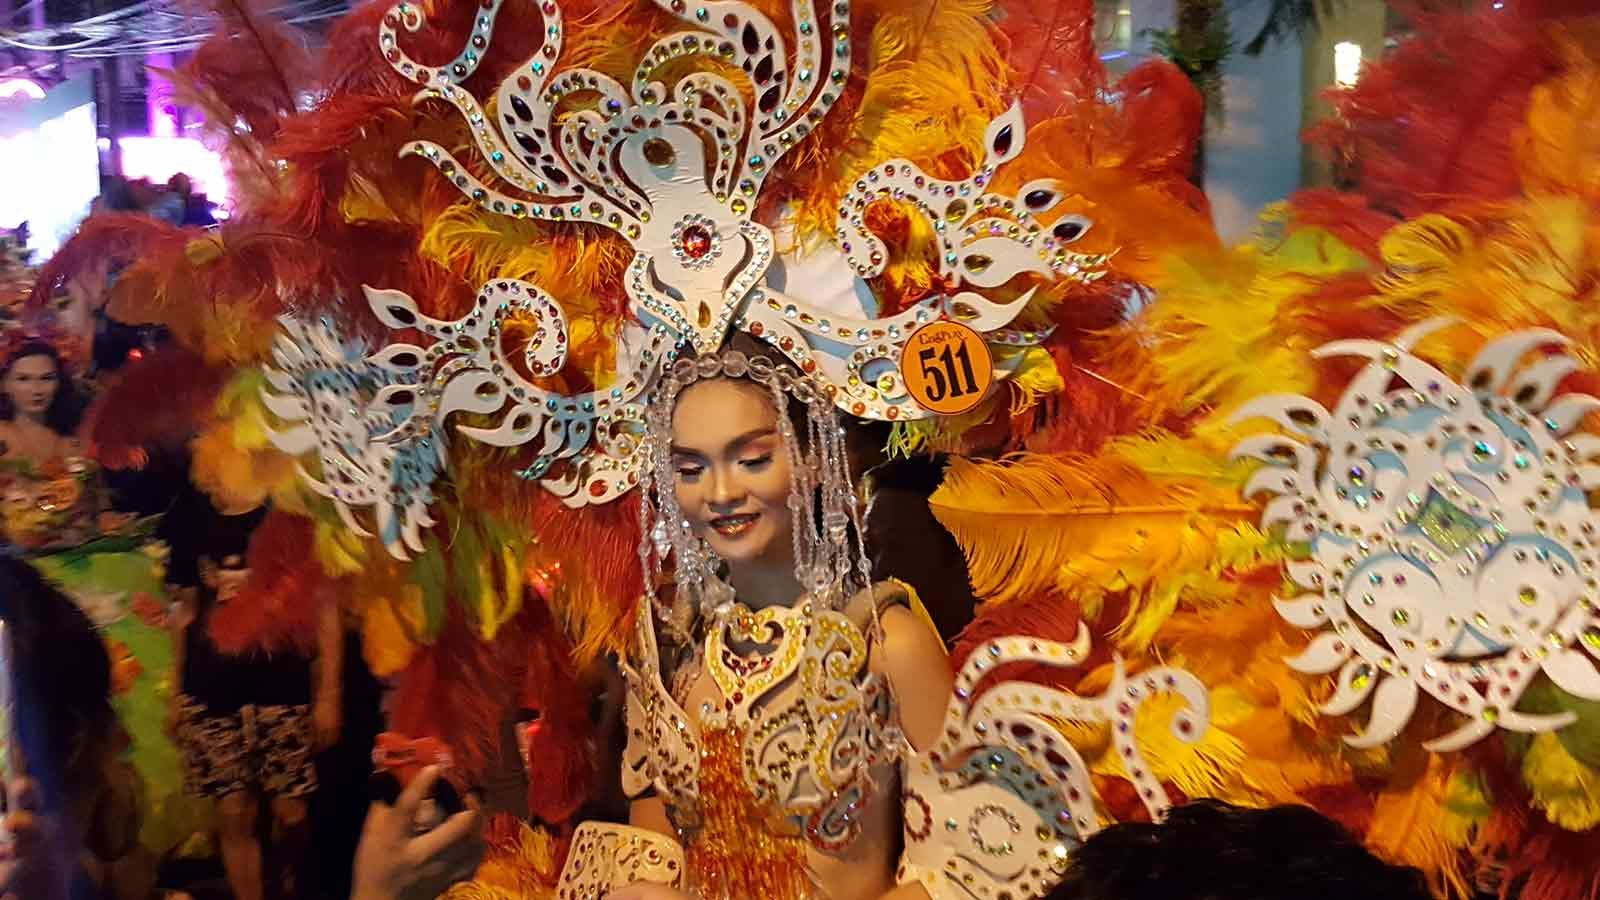 Costumed parade goer in the Philippines